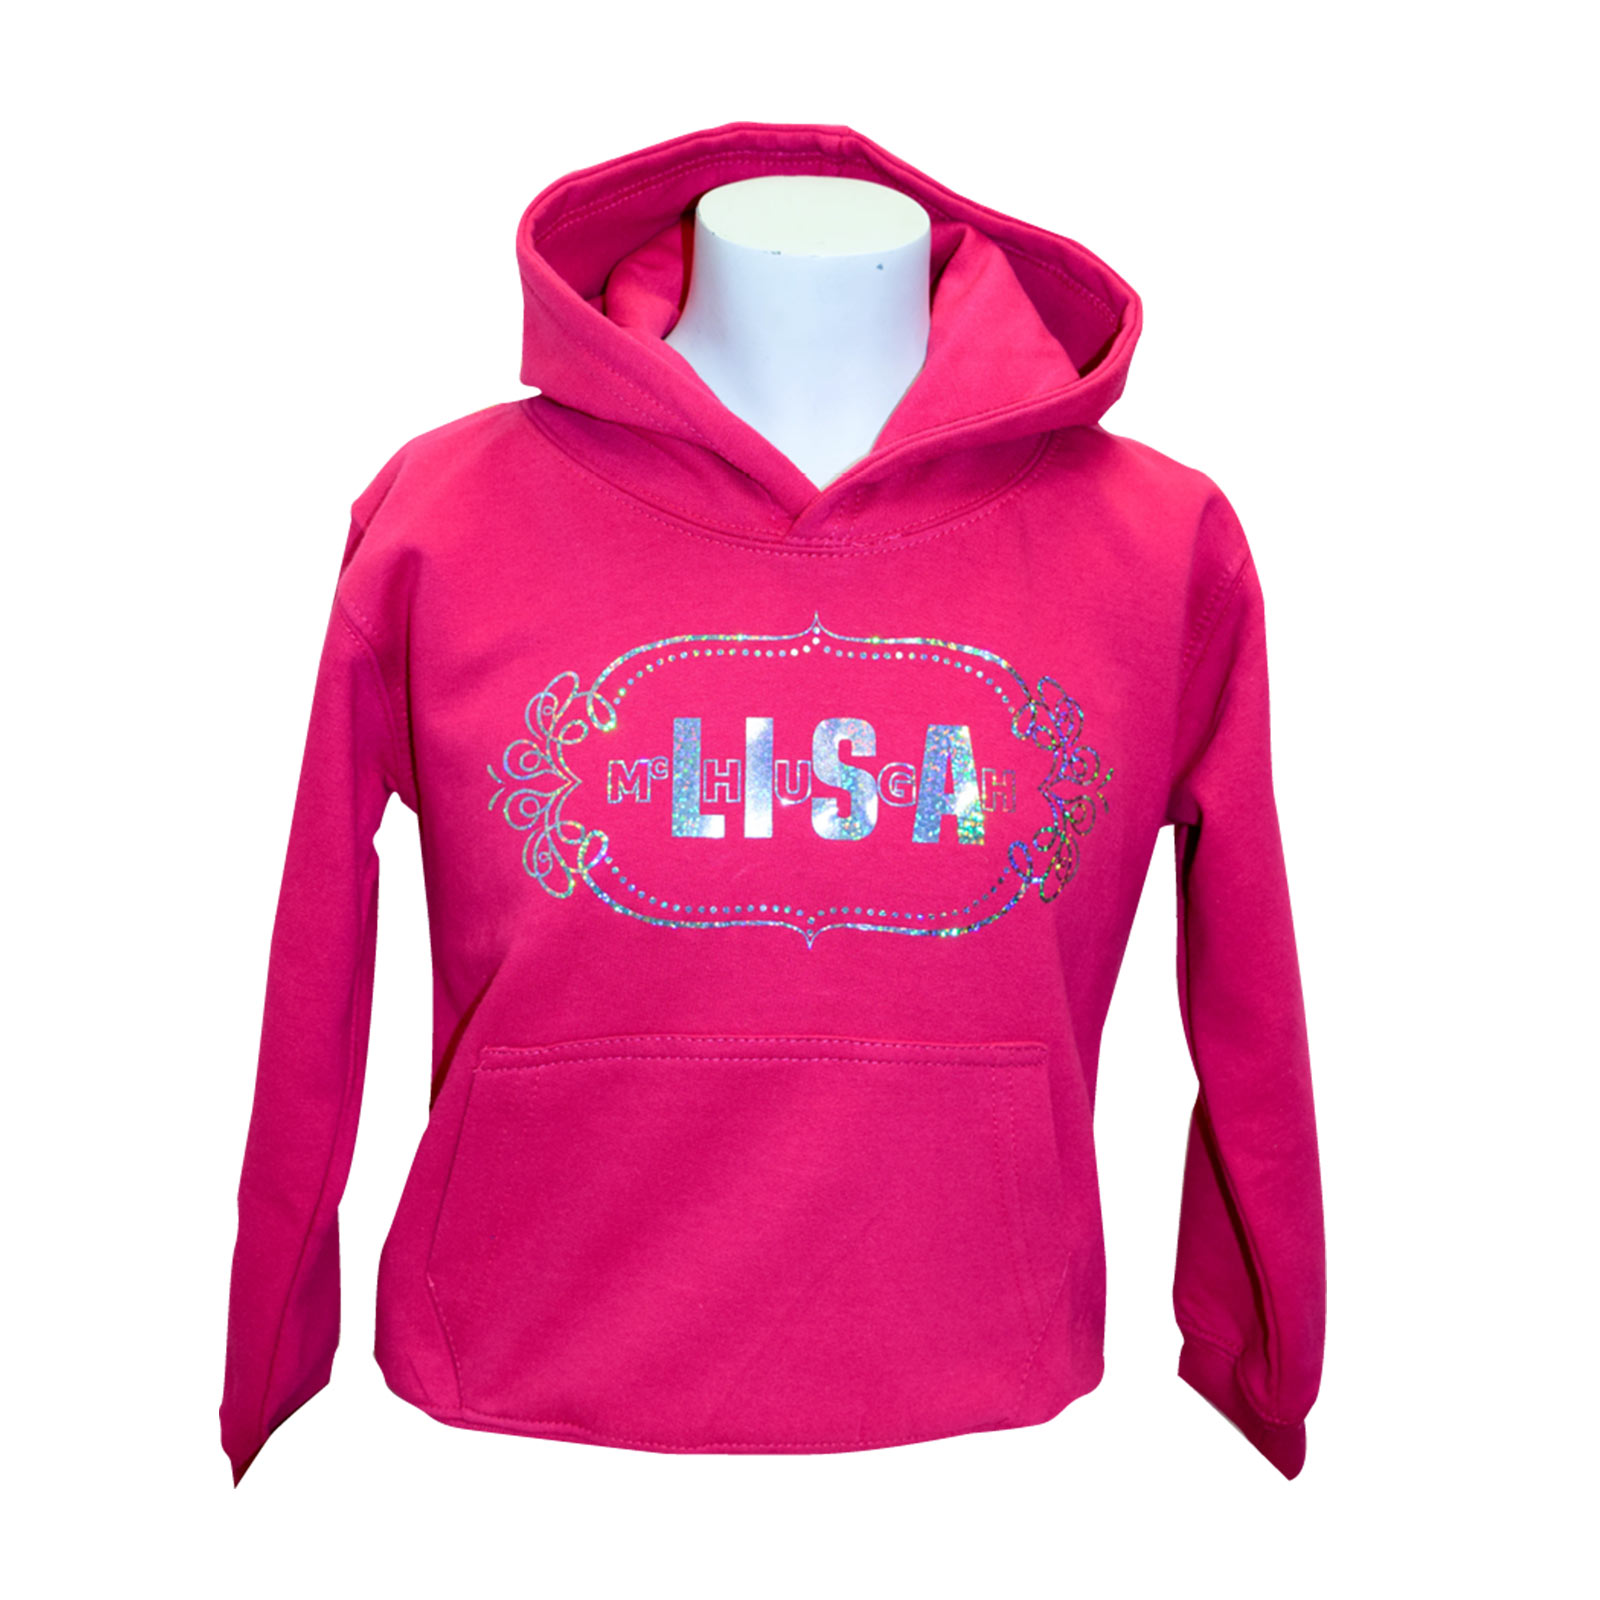 Lisa McHugh kid hoodies pink